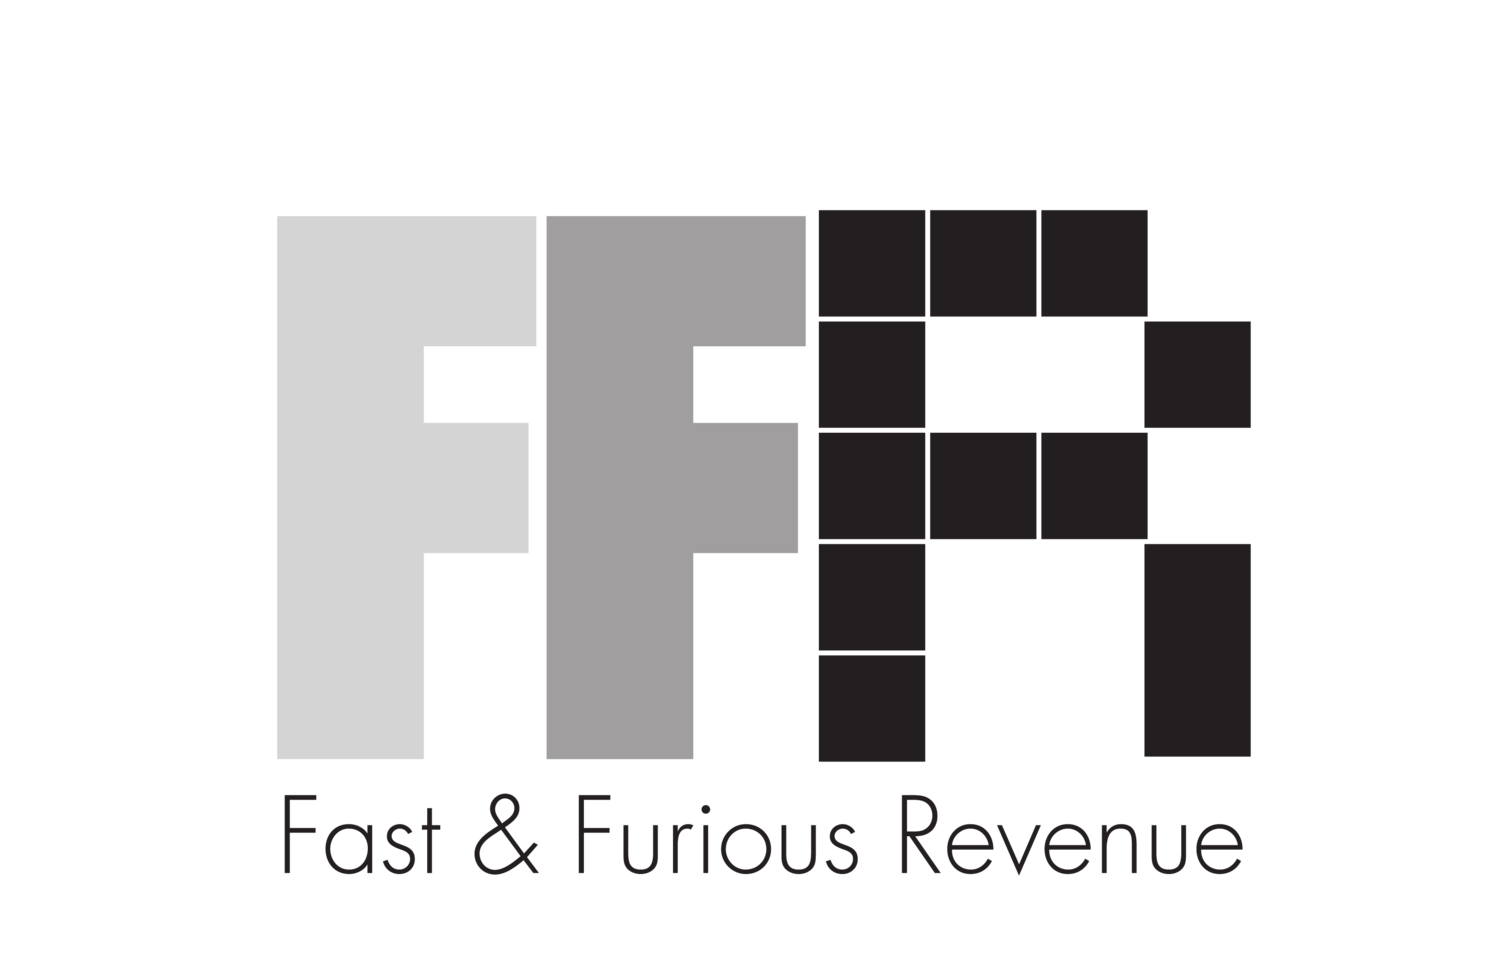 Fast and Furious Revenue